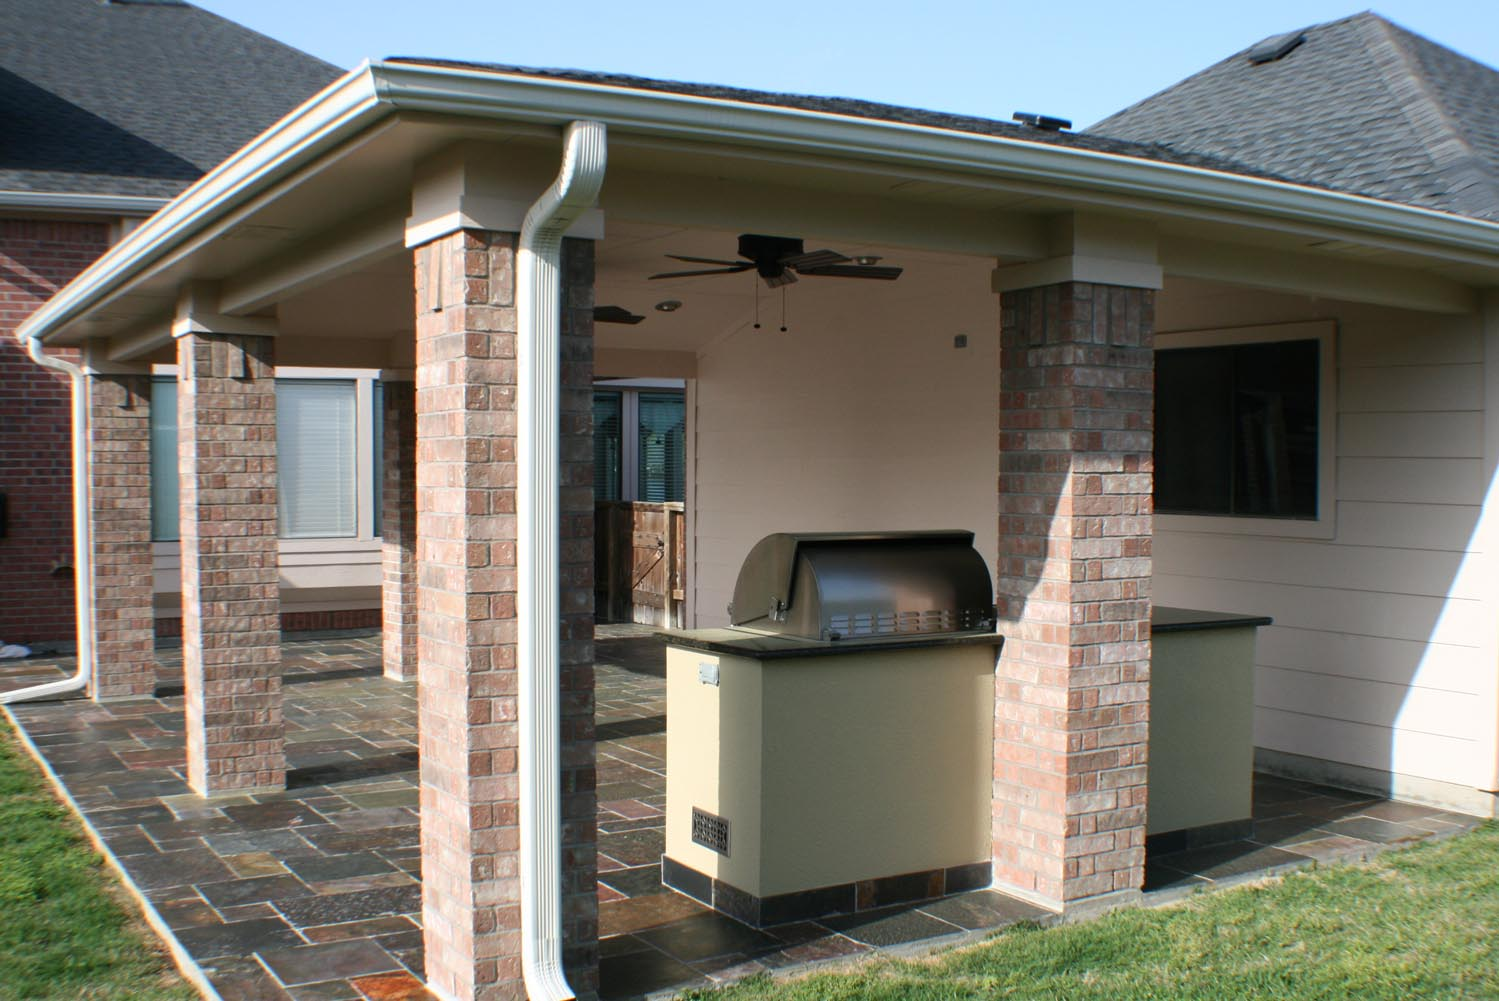 Natural Stone Floor Patio Cover and Outdoor Kitchen - HHI ... on Backyard Patio Cover  id=66371